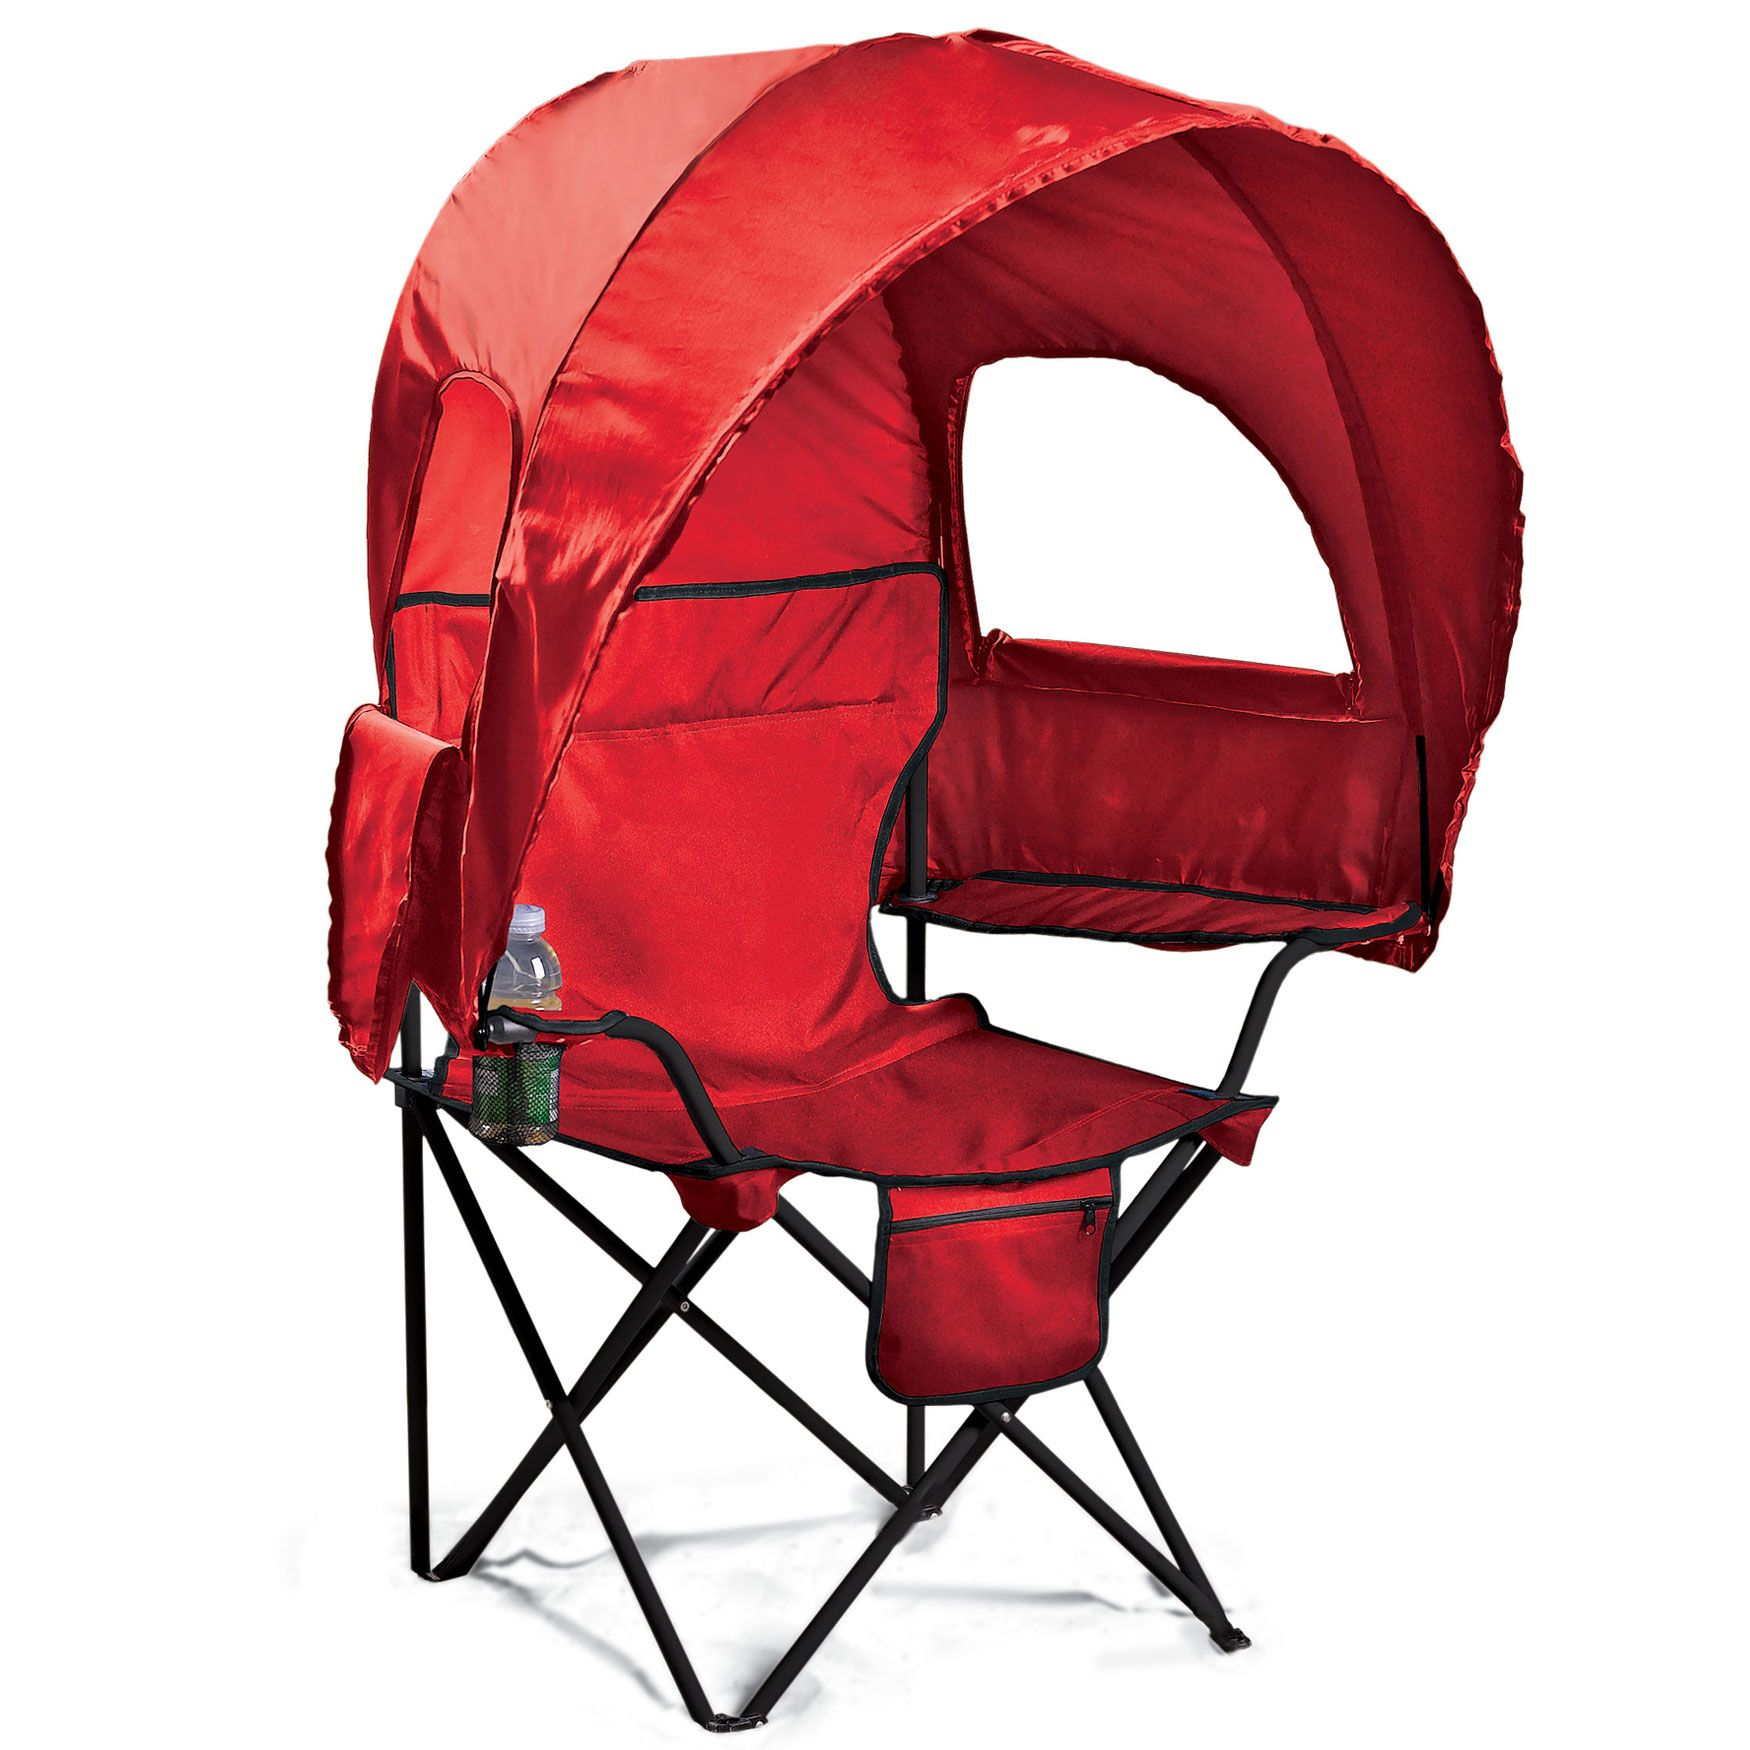 Camping Chair Accessories Yellow Modern Dining Chairs Camp With Canopy And Outdoor Stuff